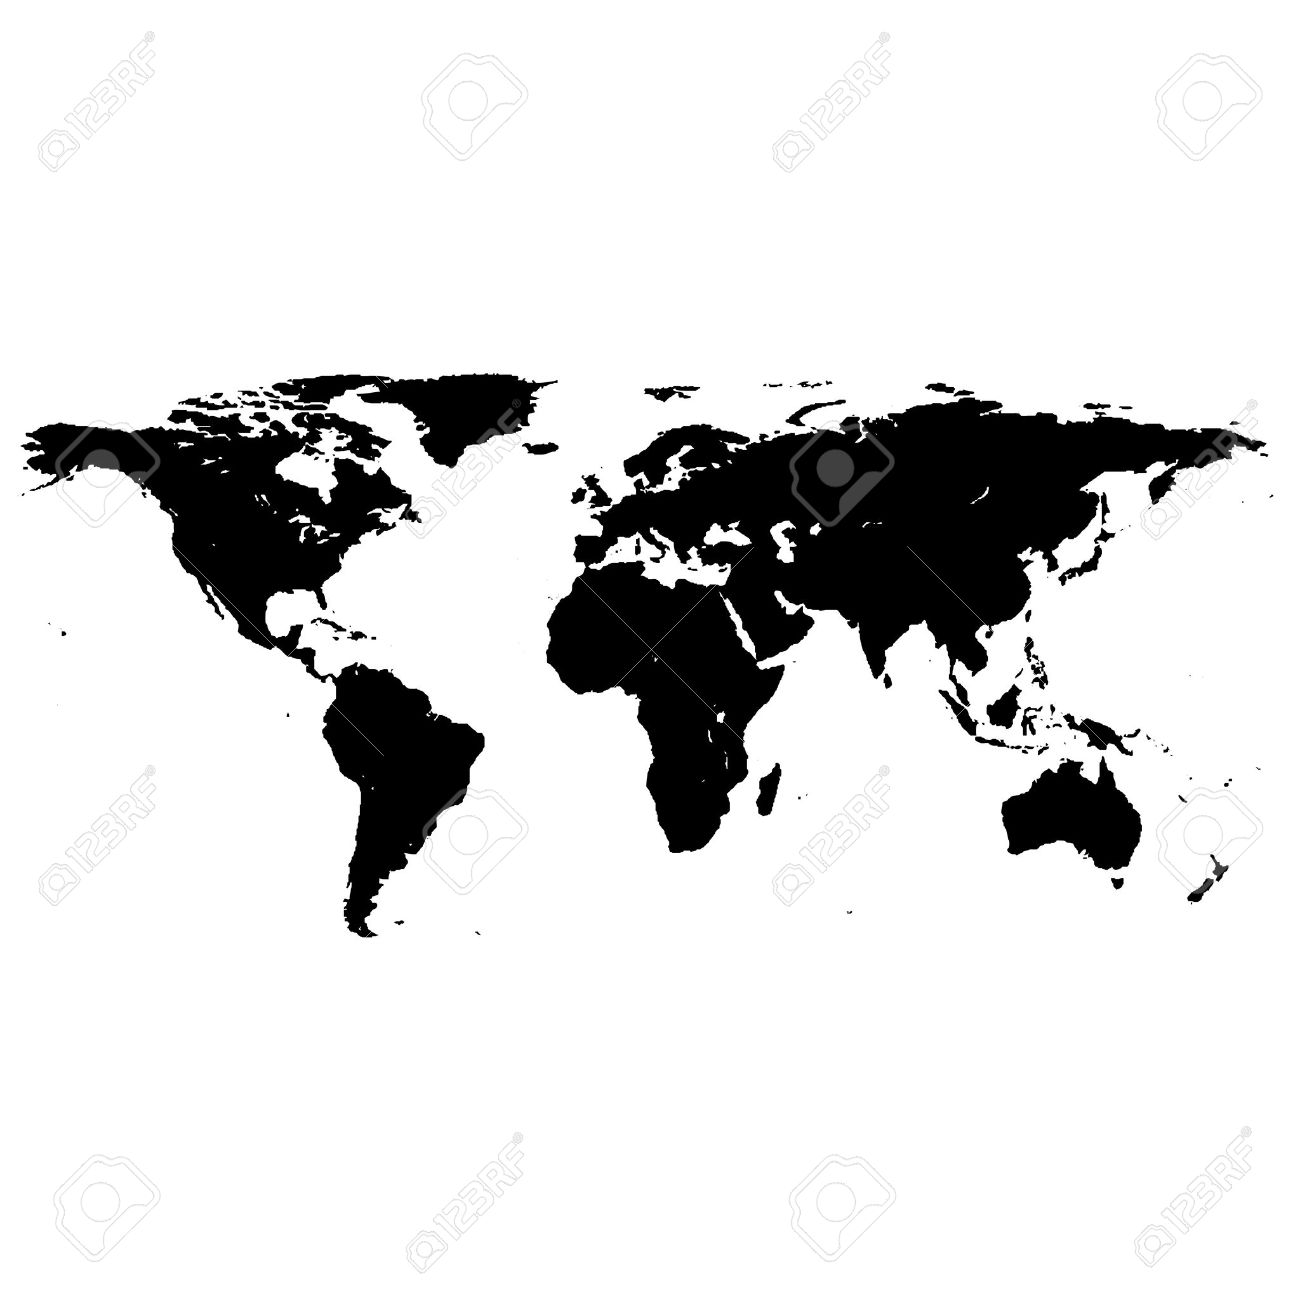 Black White World Map Royalty Free Cliparts, Vectors, And Stock ...